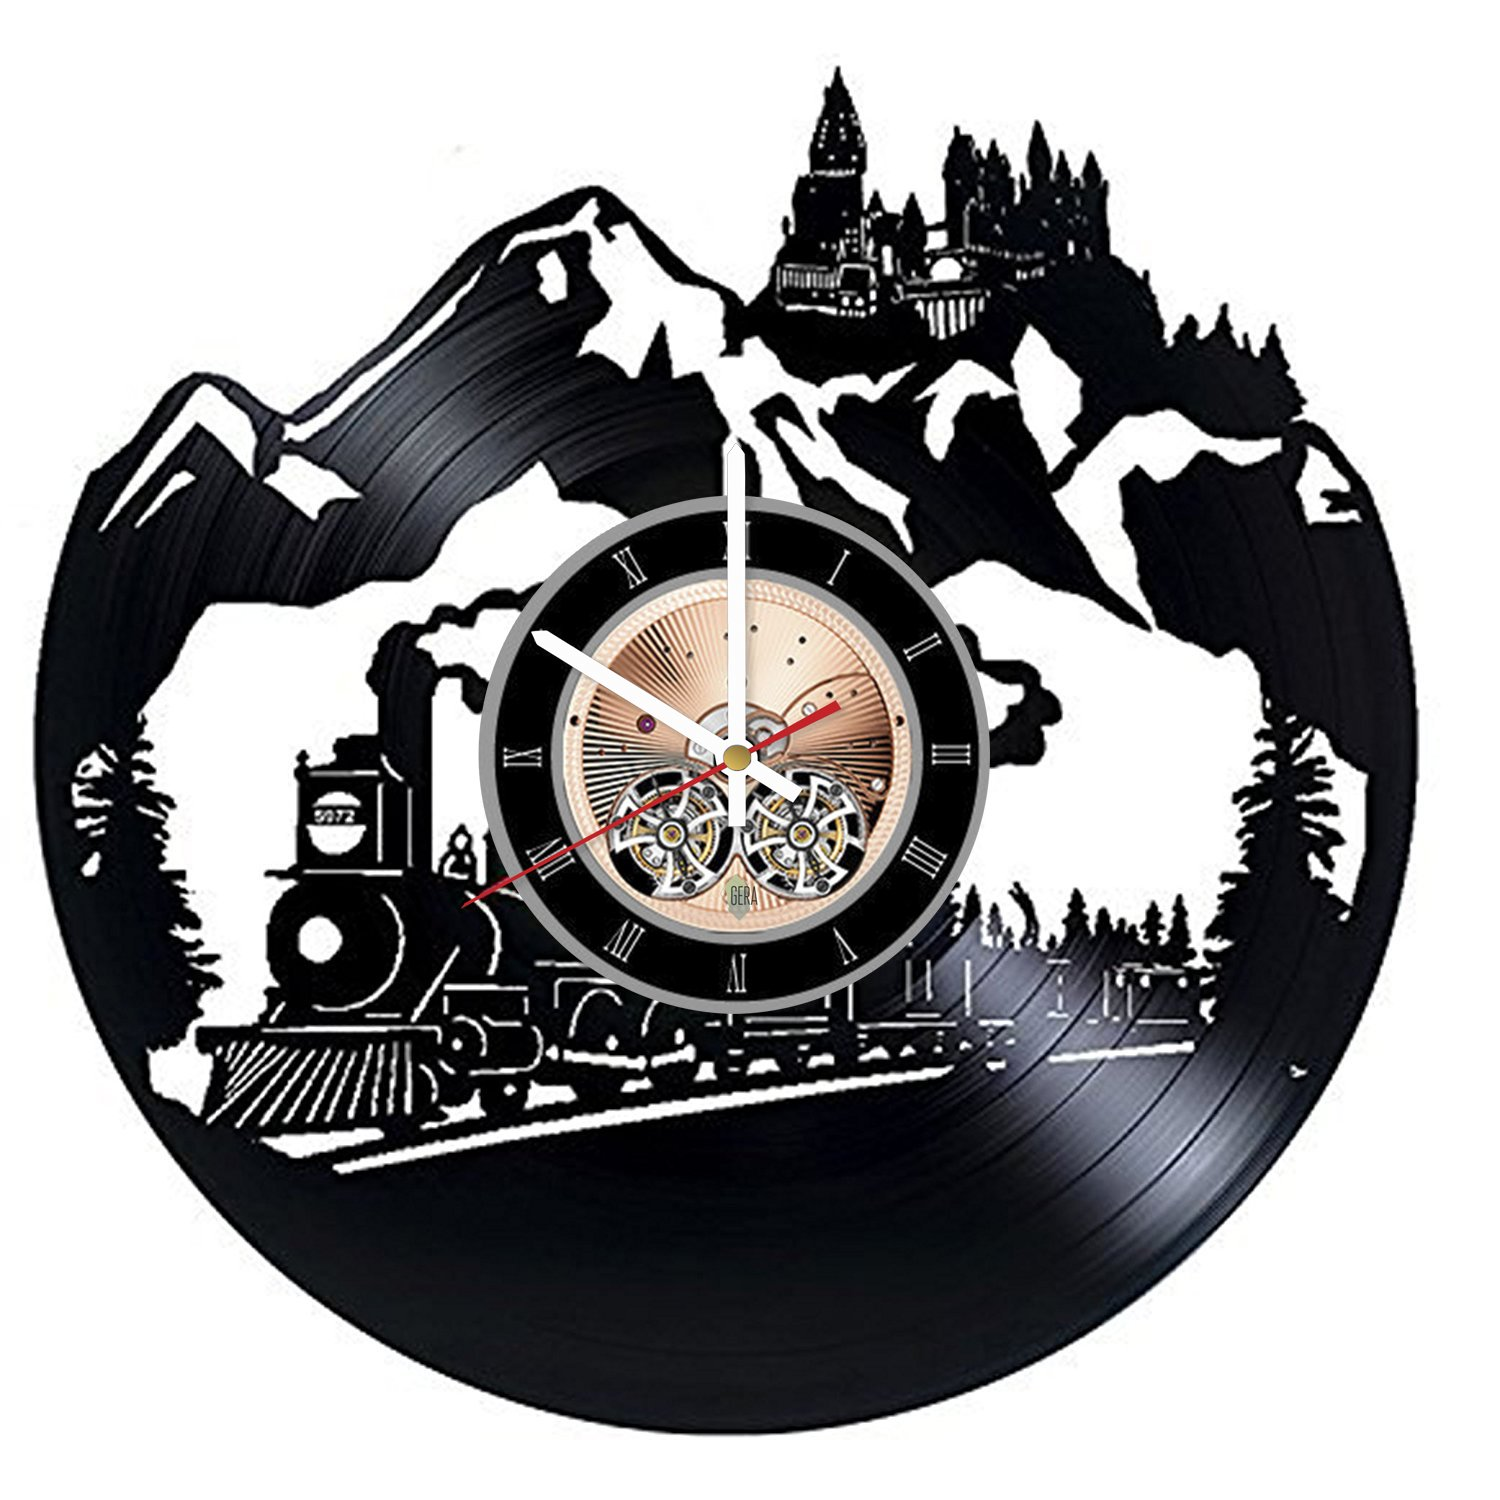 Hogwarts Harry Potter Vinyl Record Wall Clock - Get unique Kids Room wall decor - Gift ideas for children, baby – Movie Unique Modern Art